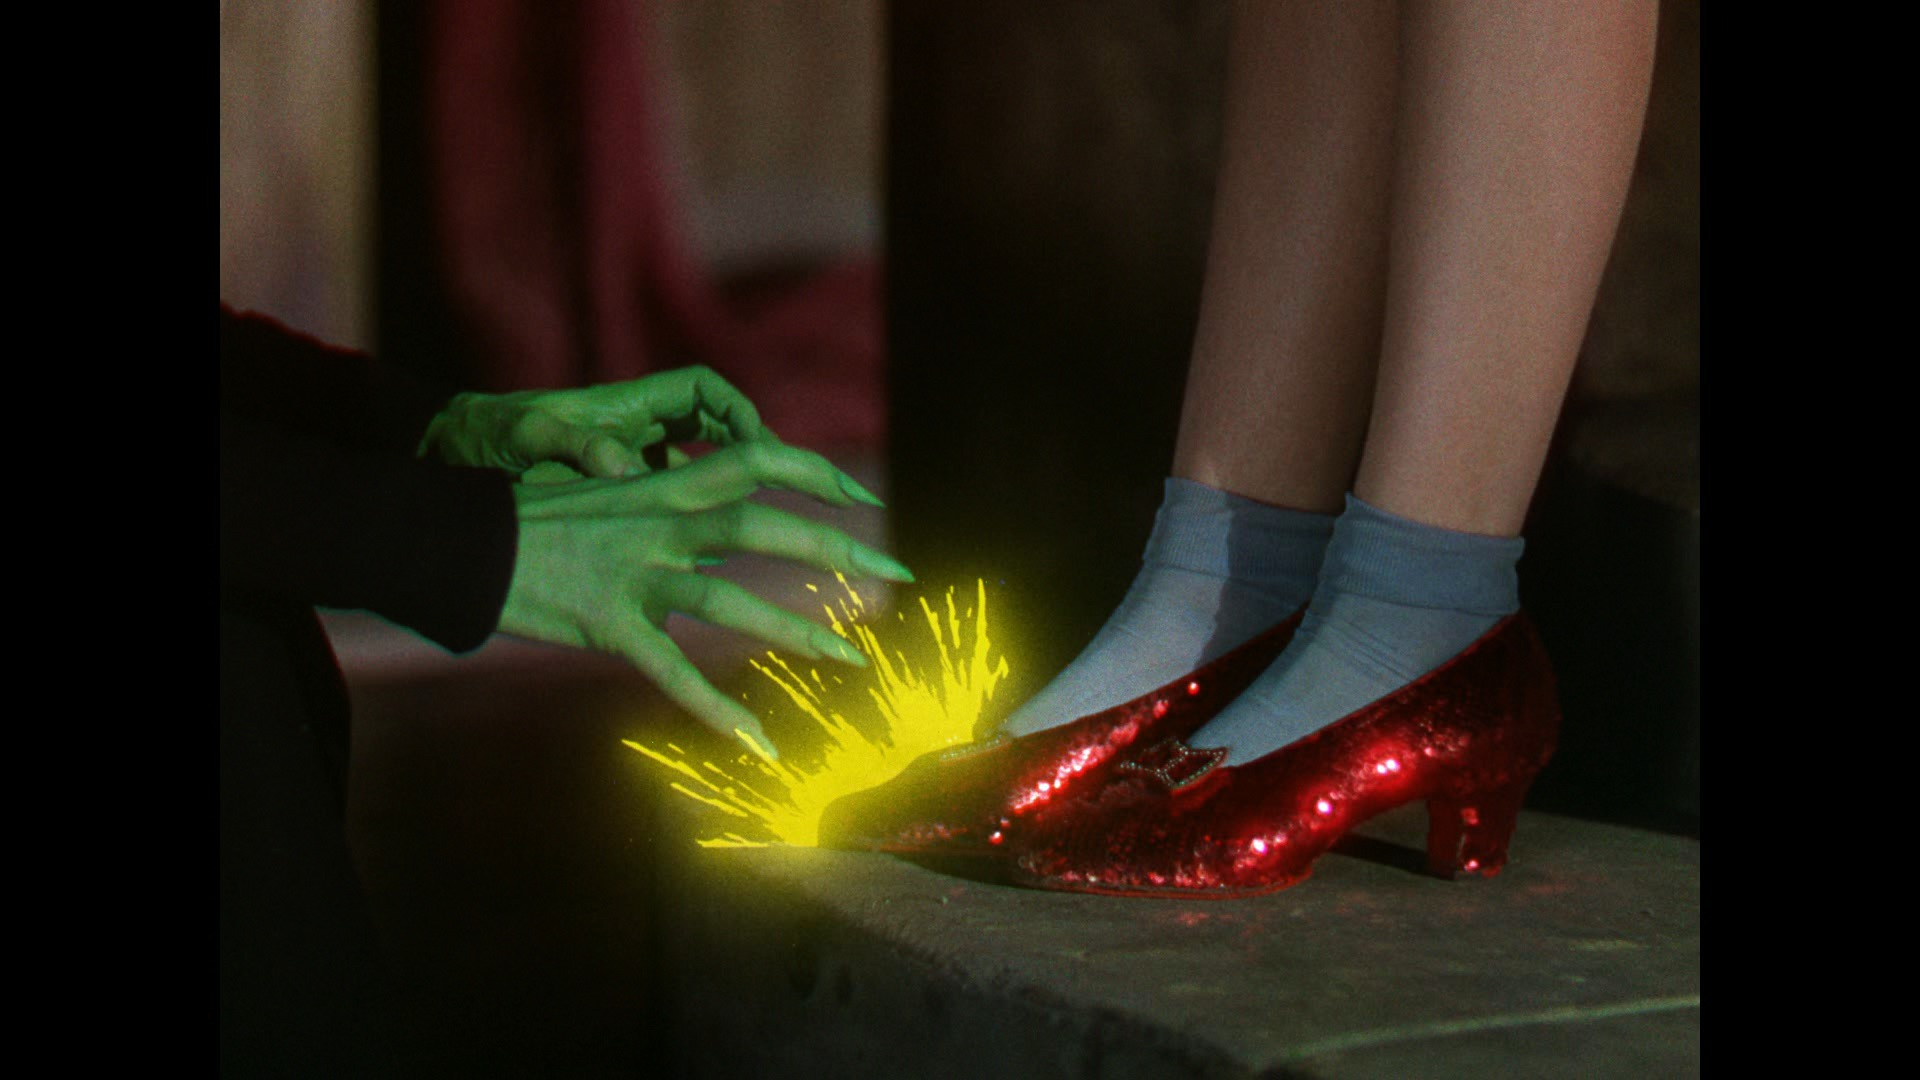 Wizard Of Oz clipart wallpaper Wallpapers Cave Backgrounds Oz Wizard